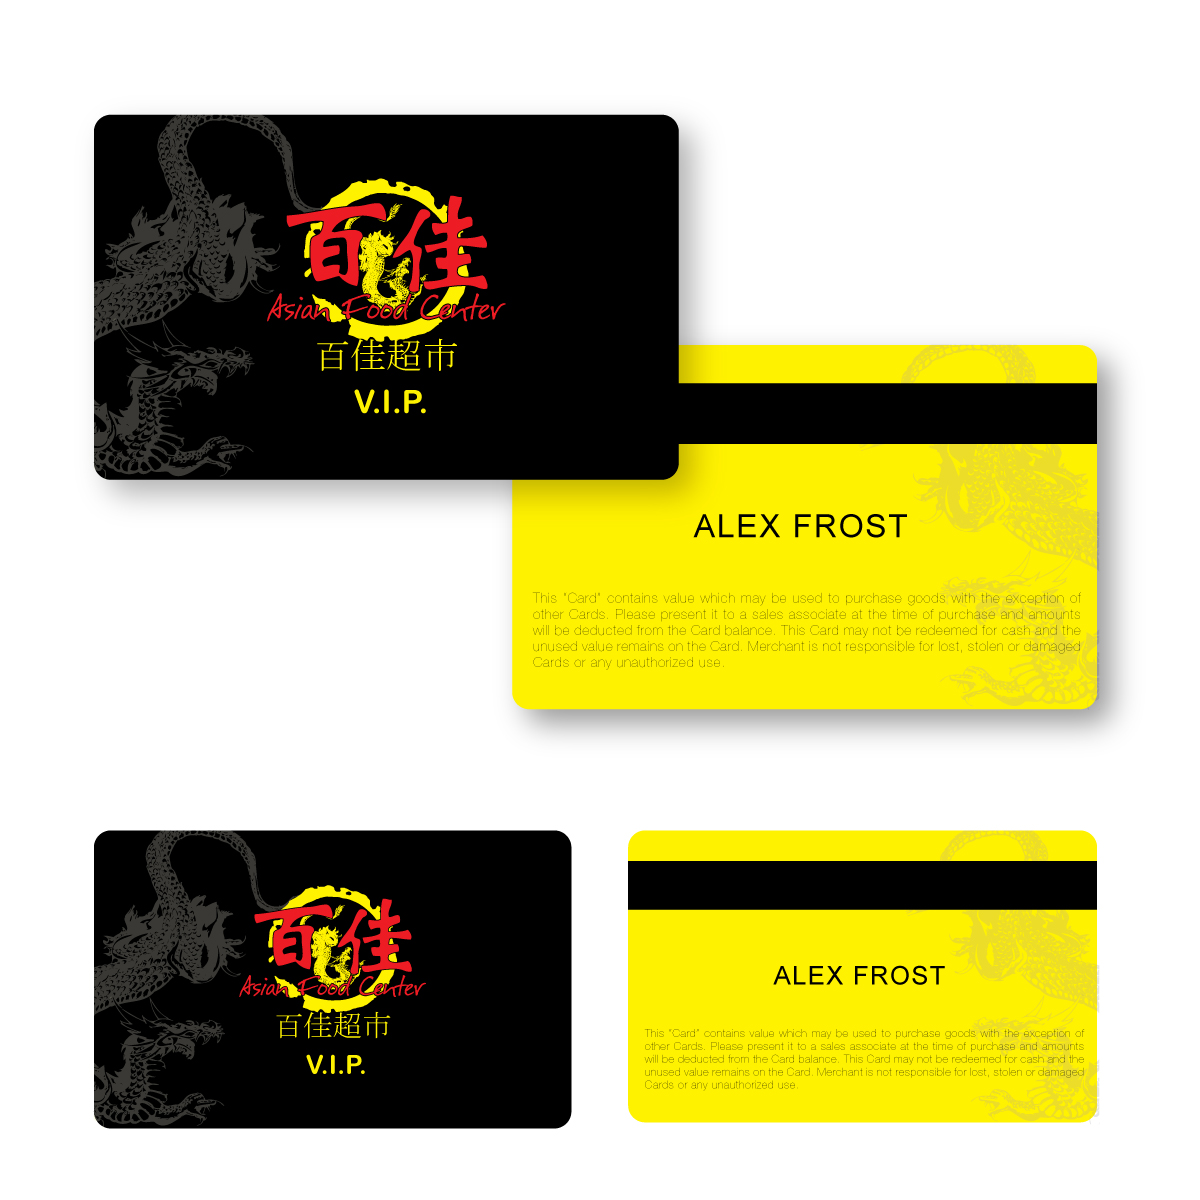 Modern professional business card design for asian food center by business card design by broken bike for asian food center vip cardmagnetic strip plastic reheart Image collections